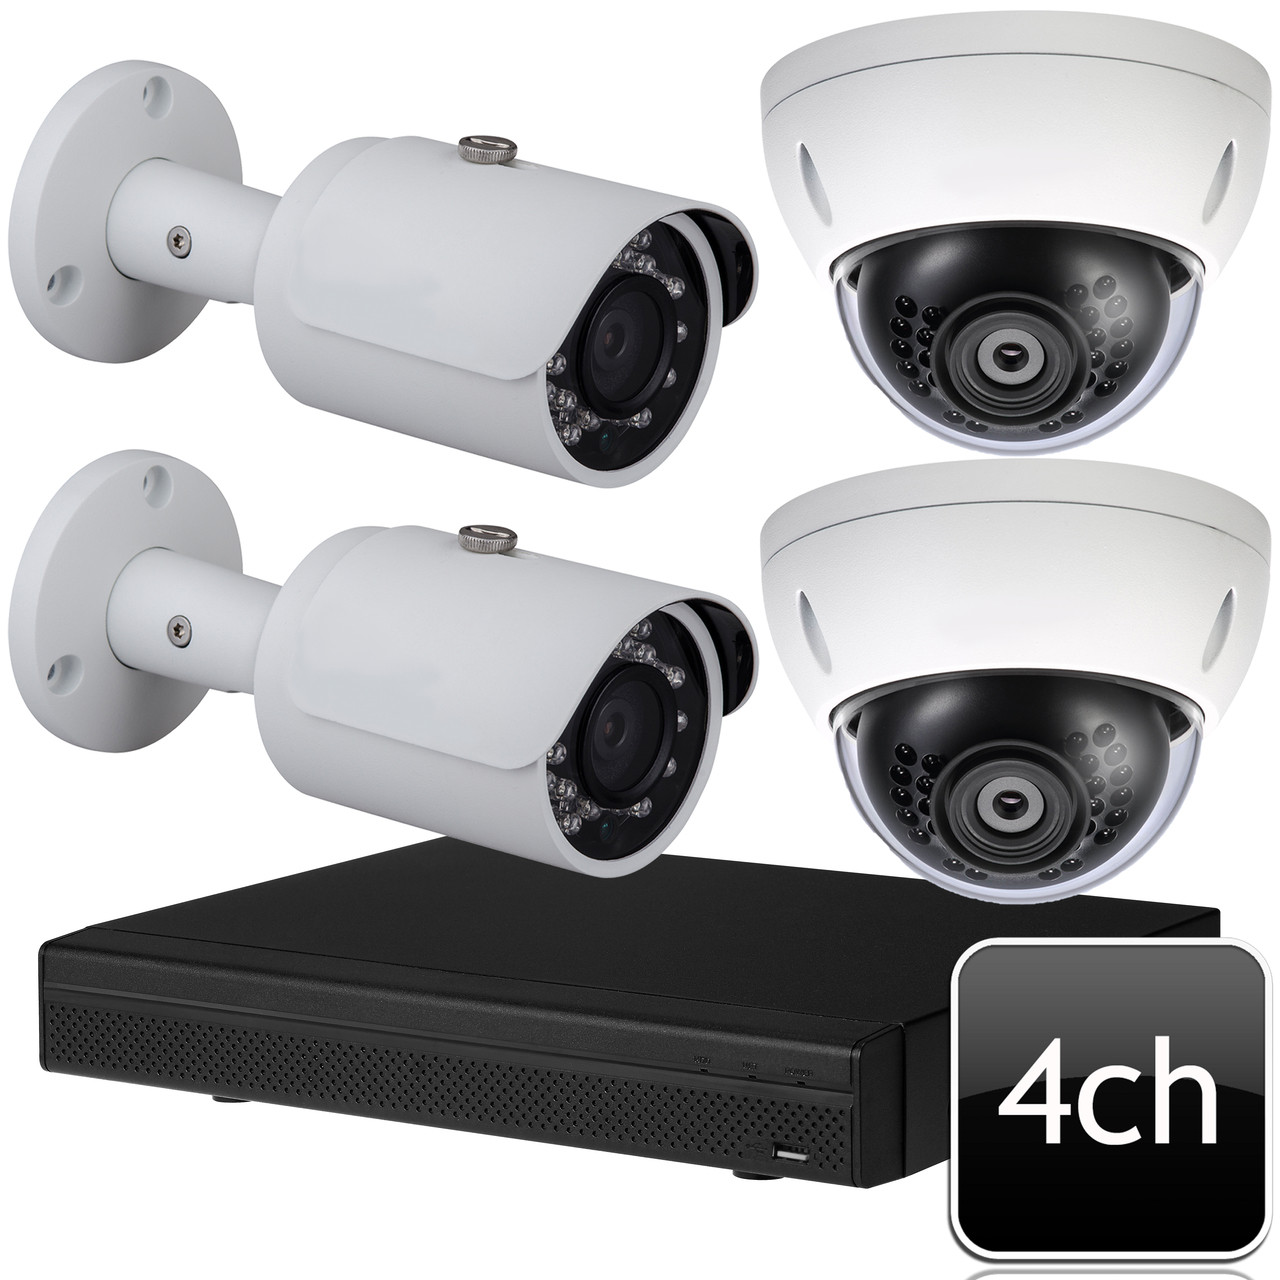 Dahua 4 channel 4MP Outdoor IR IP Security Camera System OEM-SD6